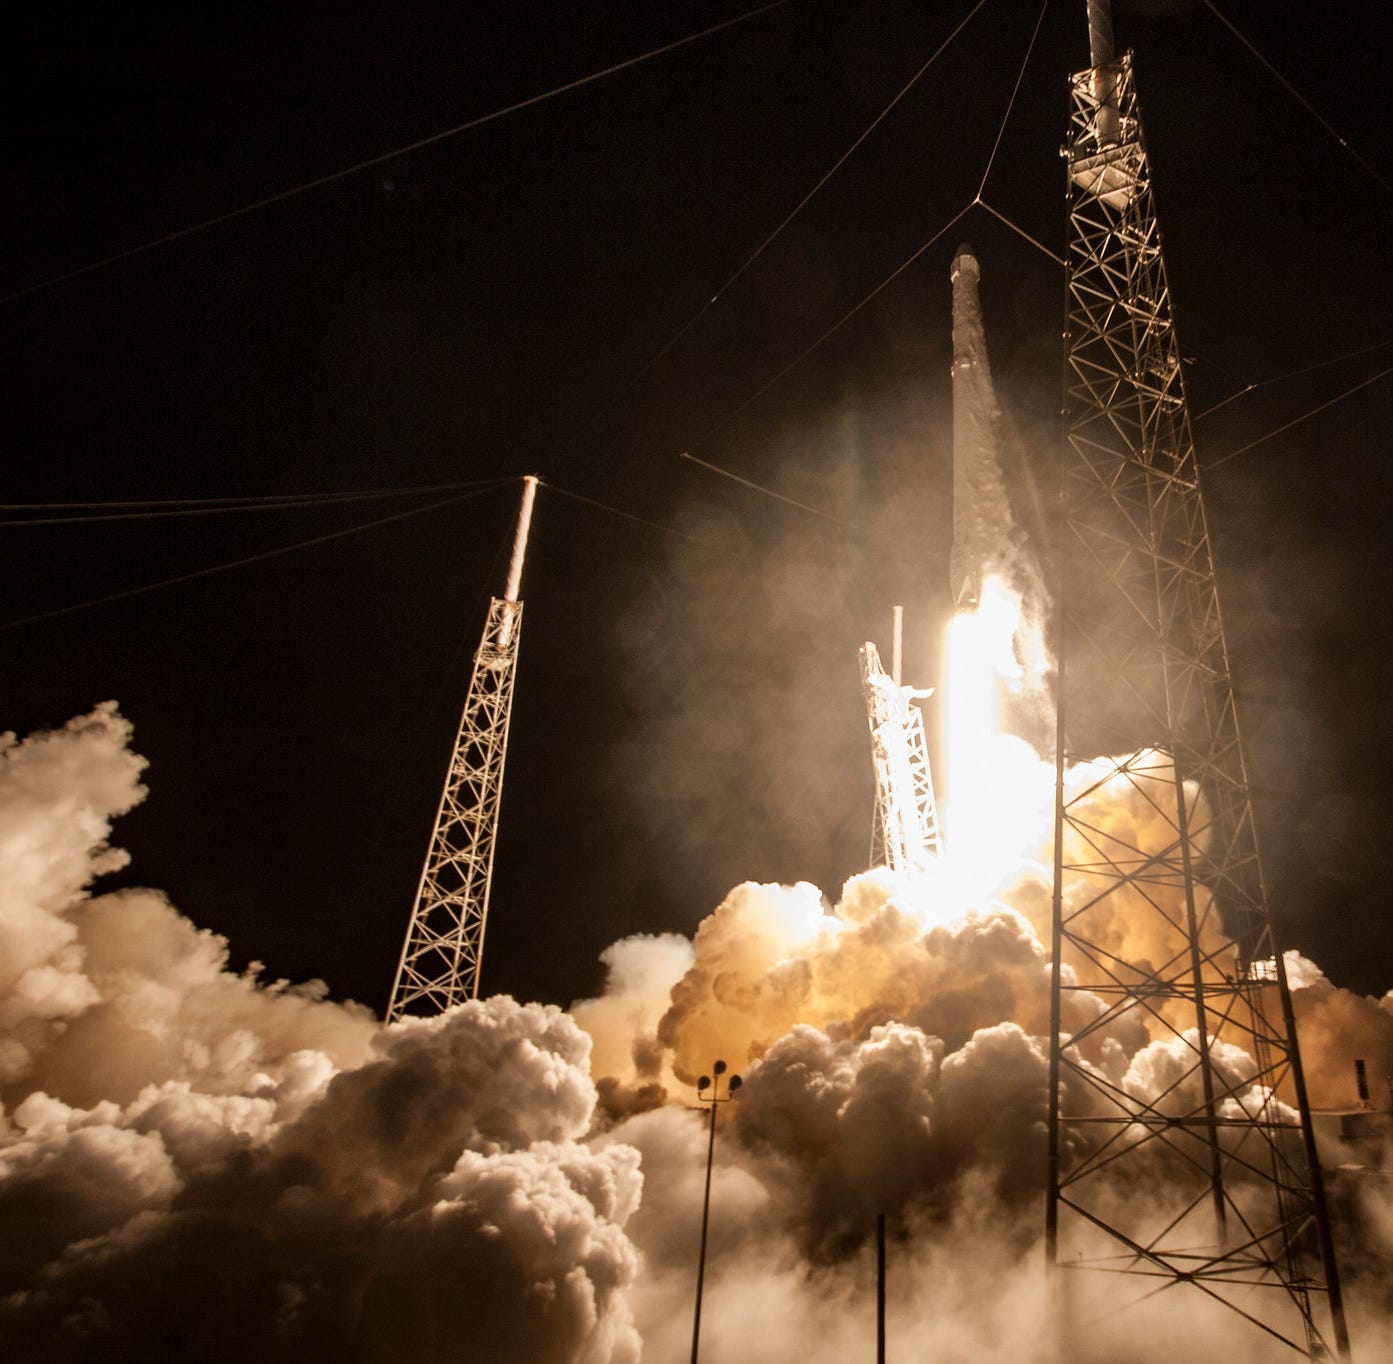 SpaceX set to launch ISS resupply mission after Crew Dragon 'shock'